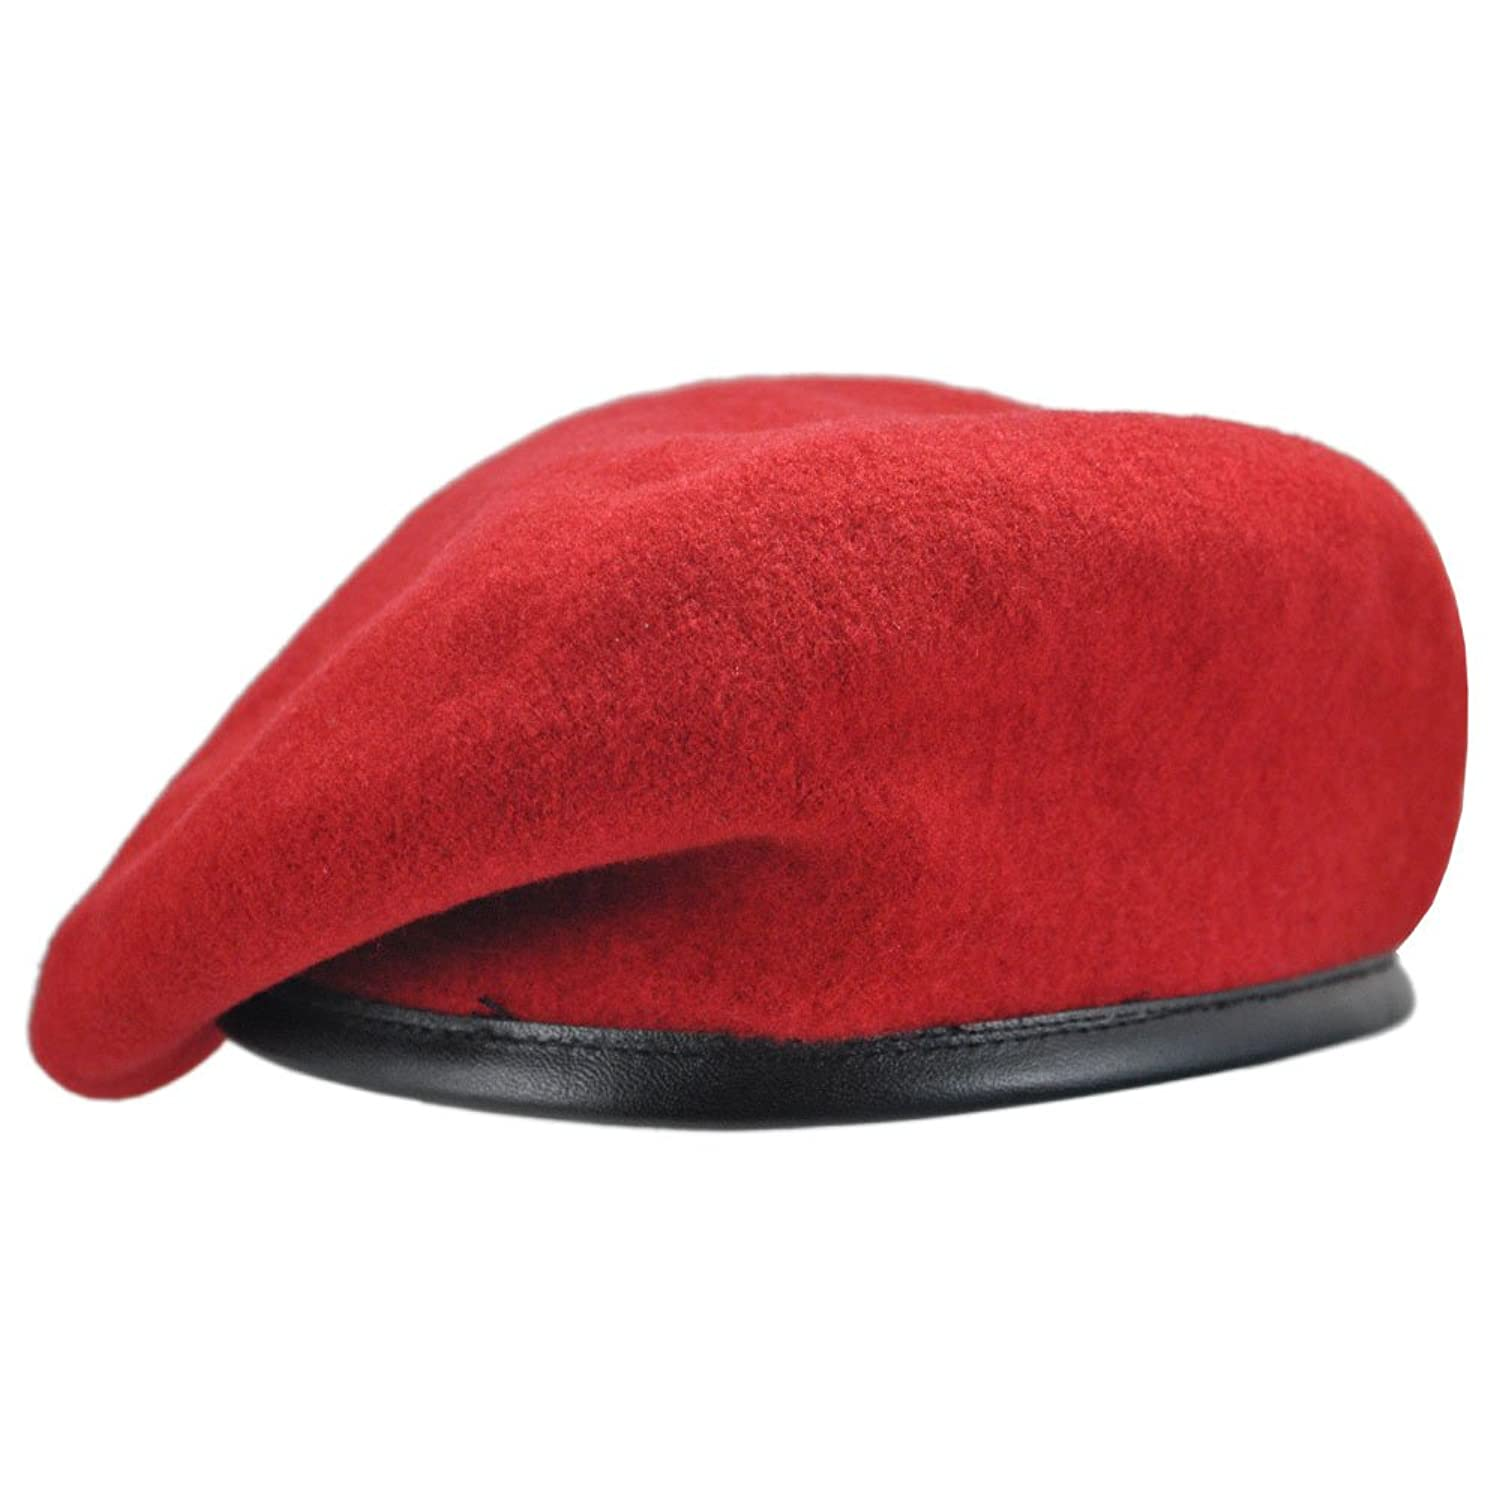 Military Berets Colors images